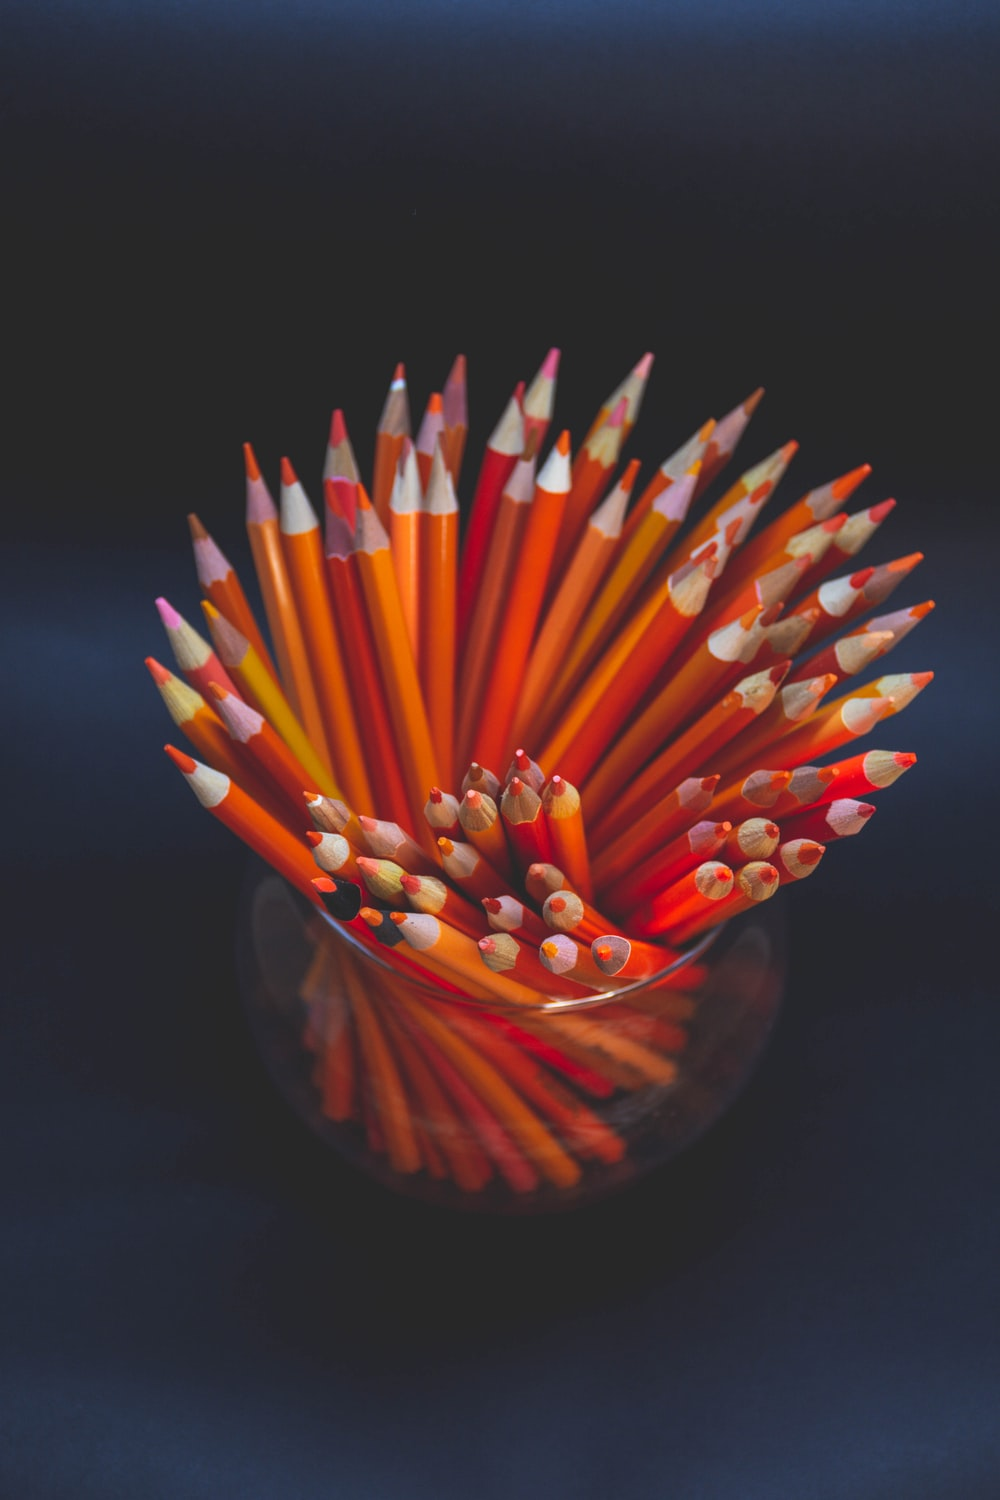 coloring pencils in brown glass container